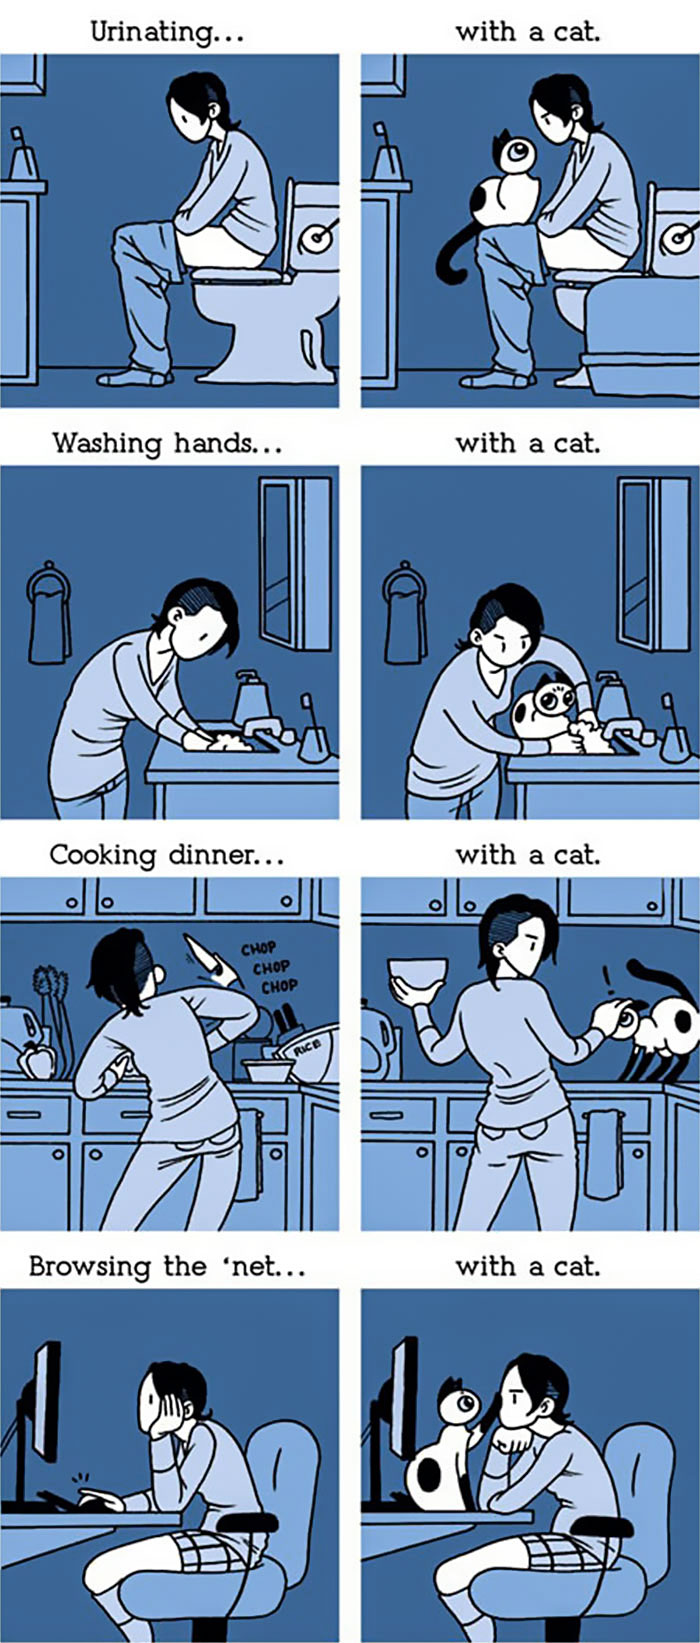 funny-cat-owner-comics-11